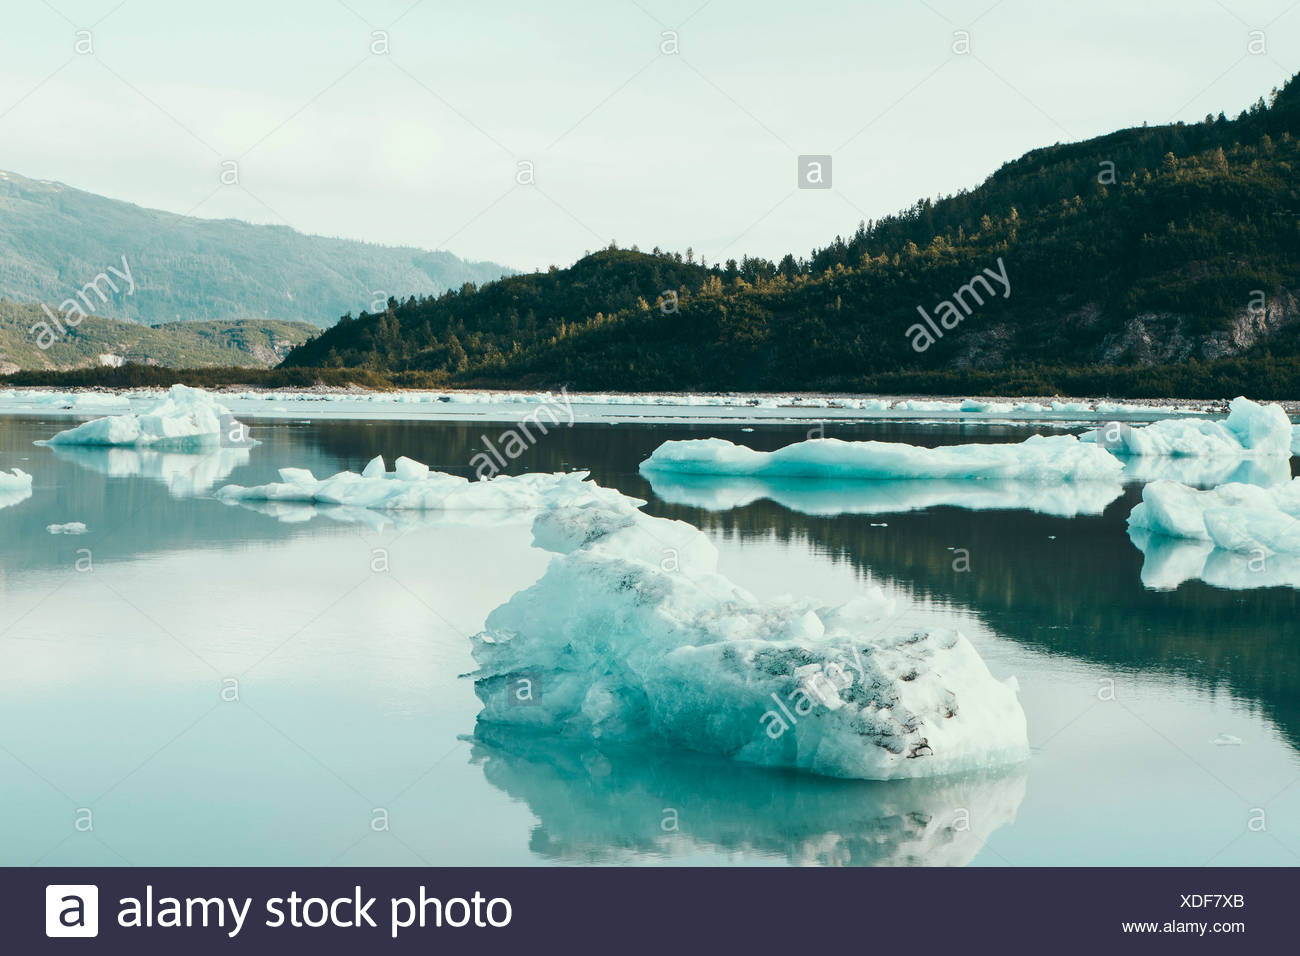 Icebergs floating off the shore at the end of the McBride Glacier, off Alaska. - Stock Image